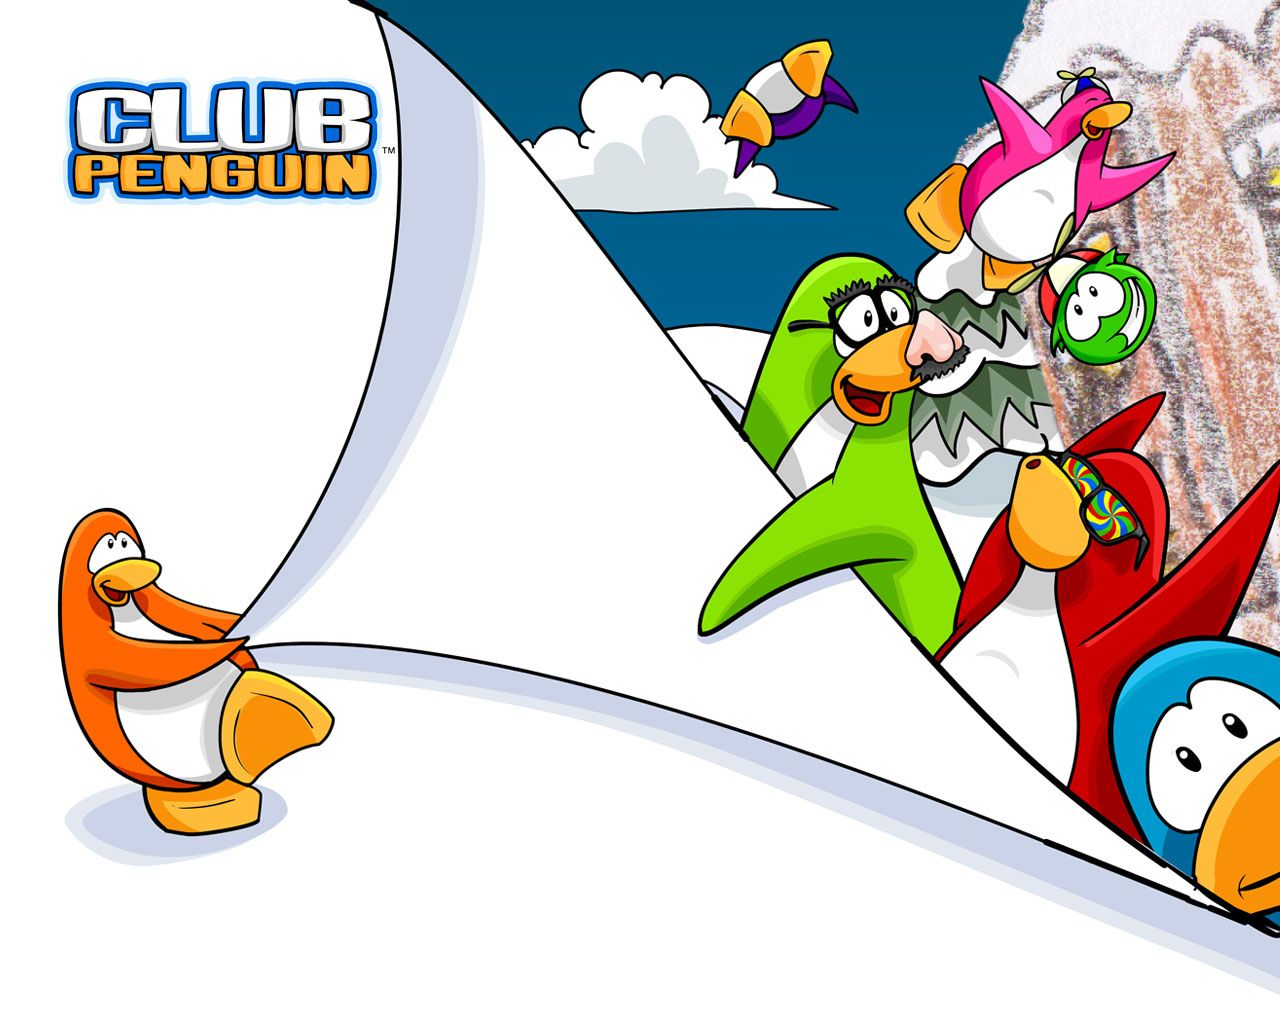 Club Penguin 101 Club Penguin Penguins Wallpaper Downloads